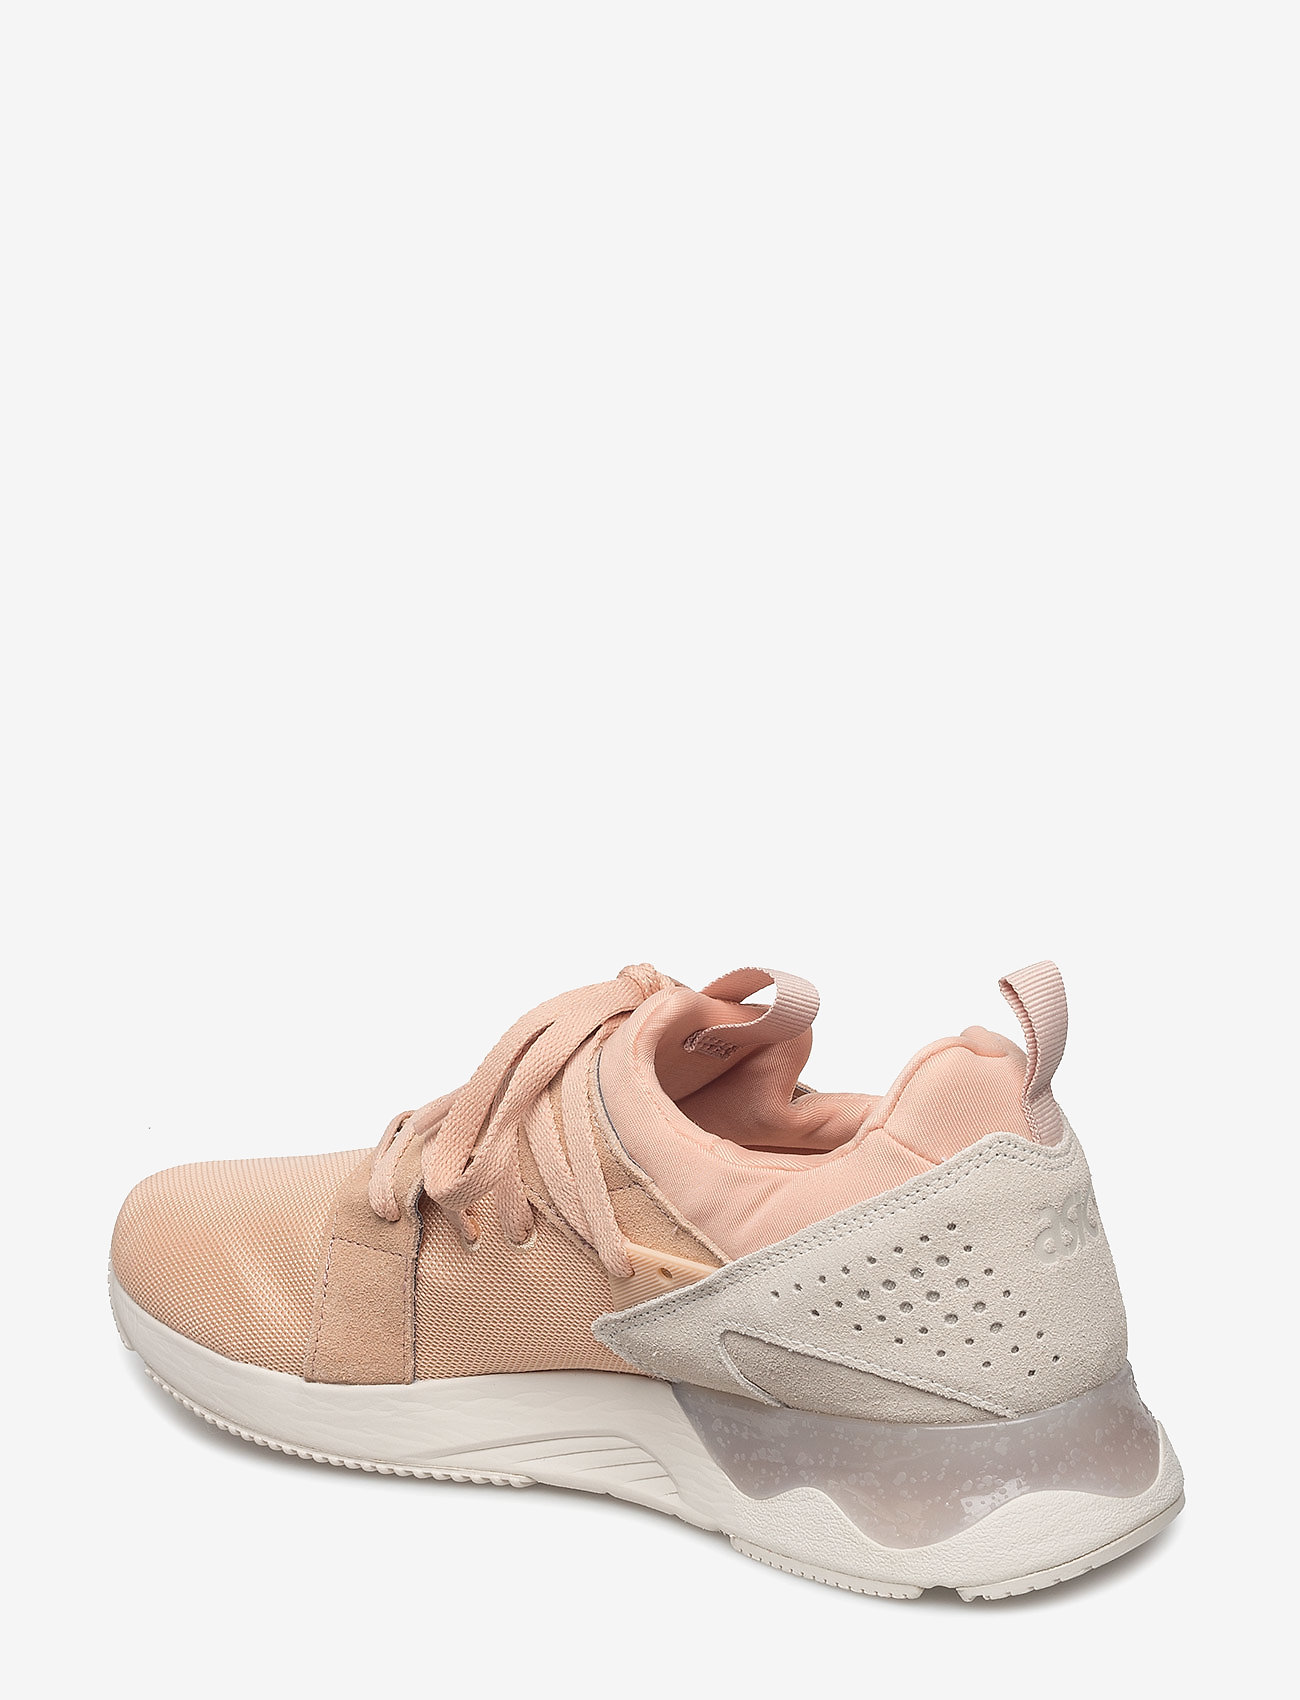 Gel-lyte V Sanze (Amberlight Birch) - ASICS SportStyle